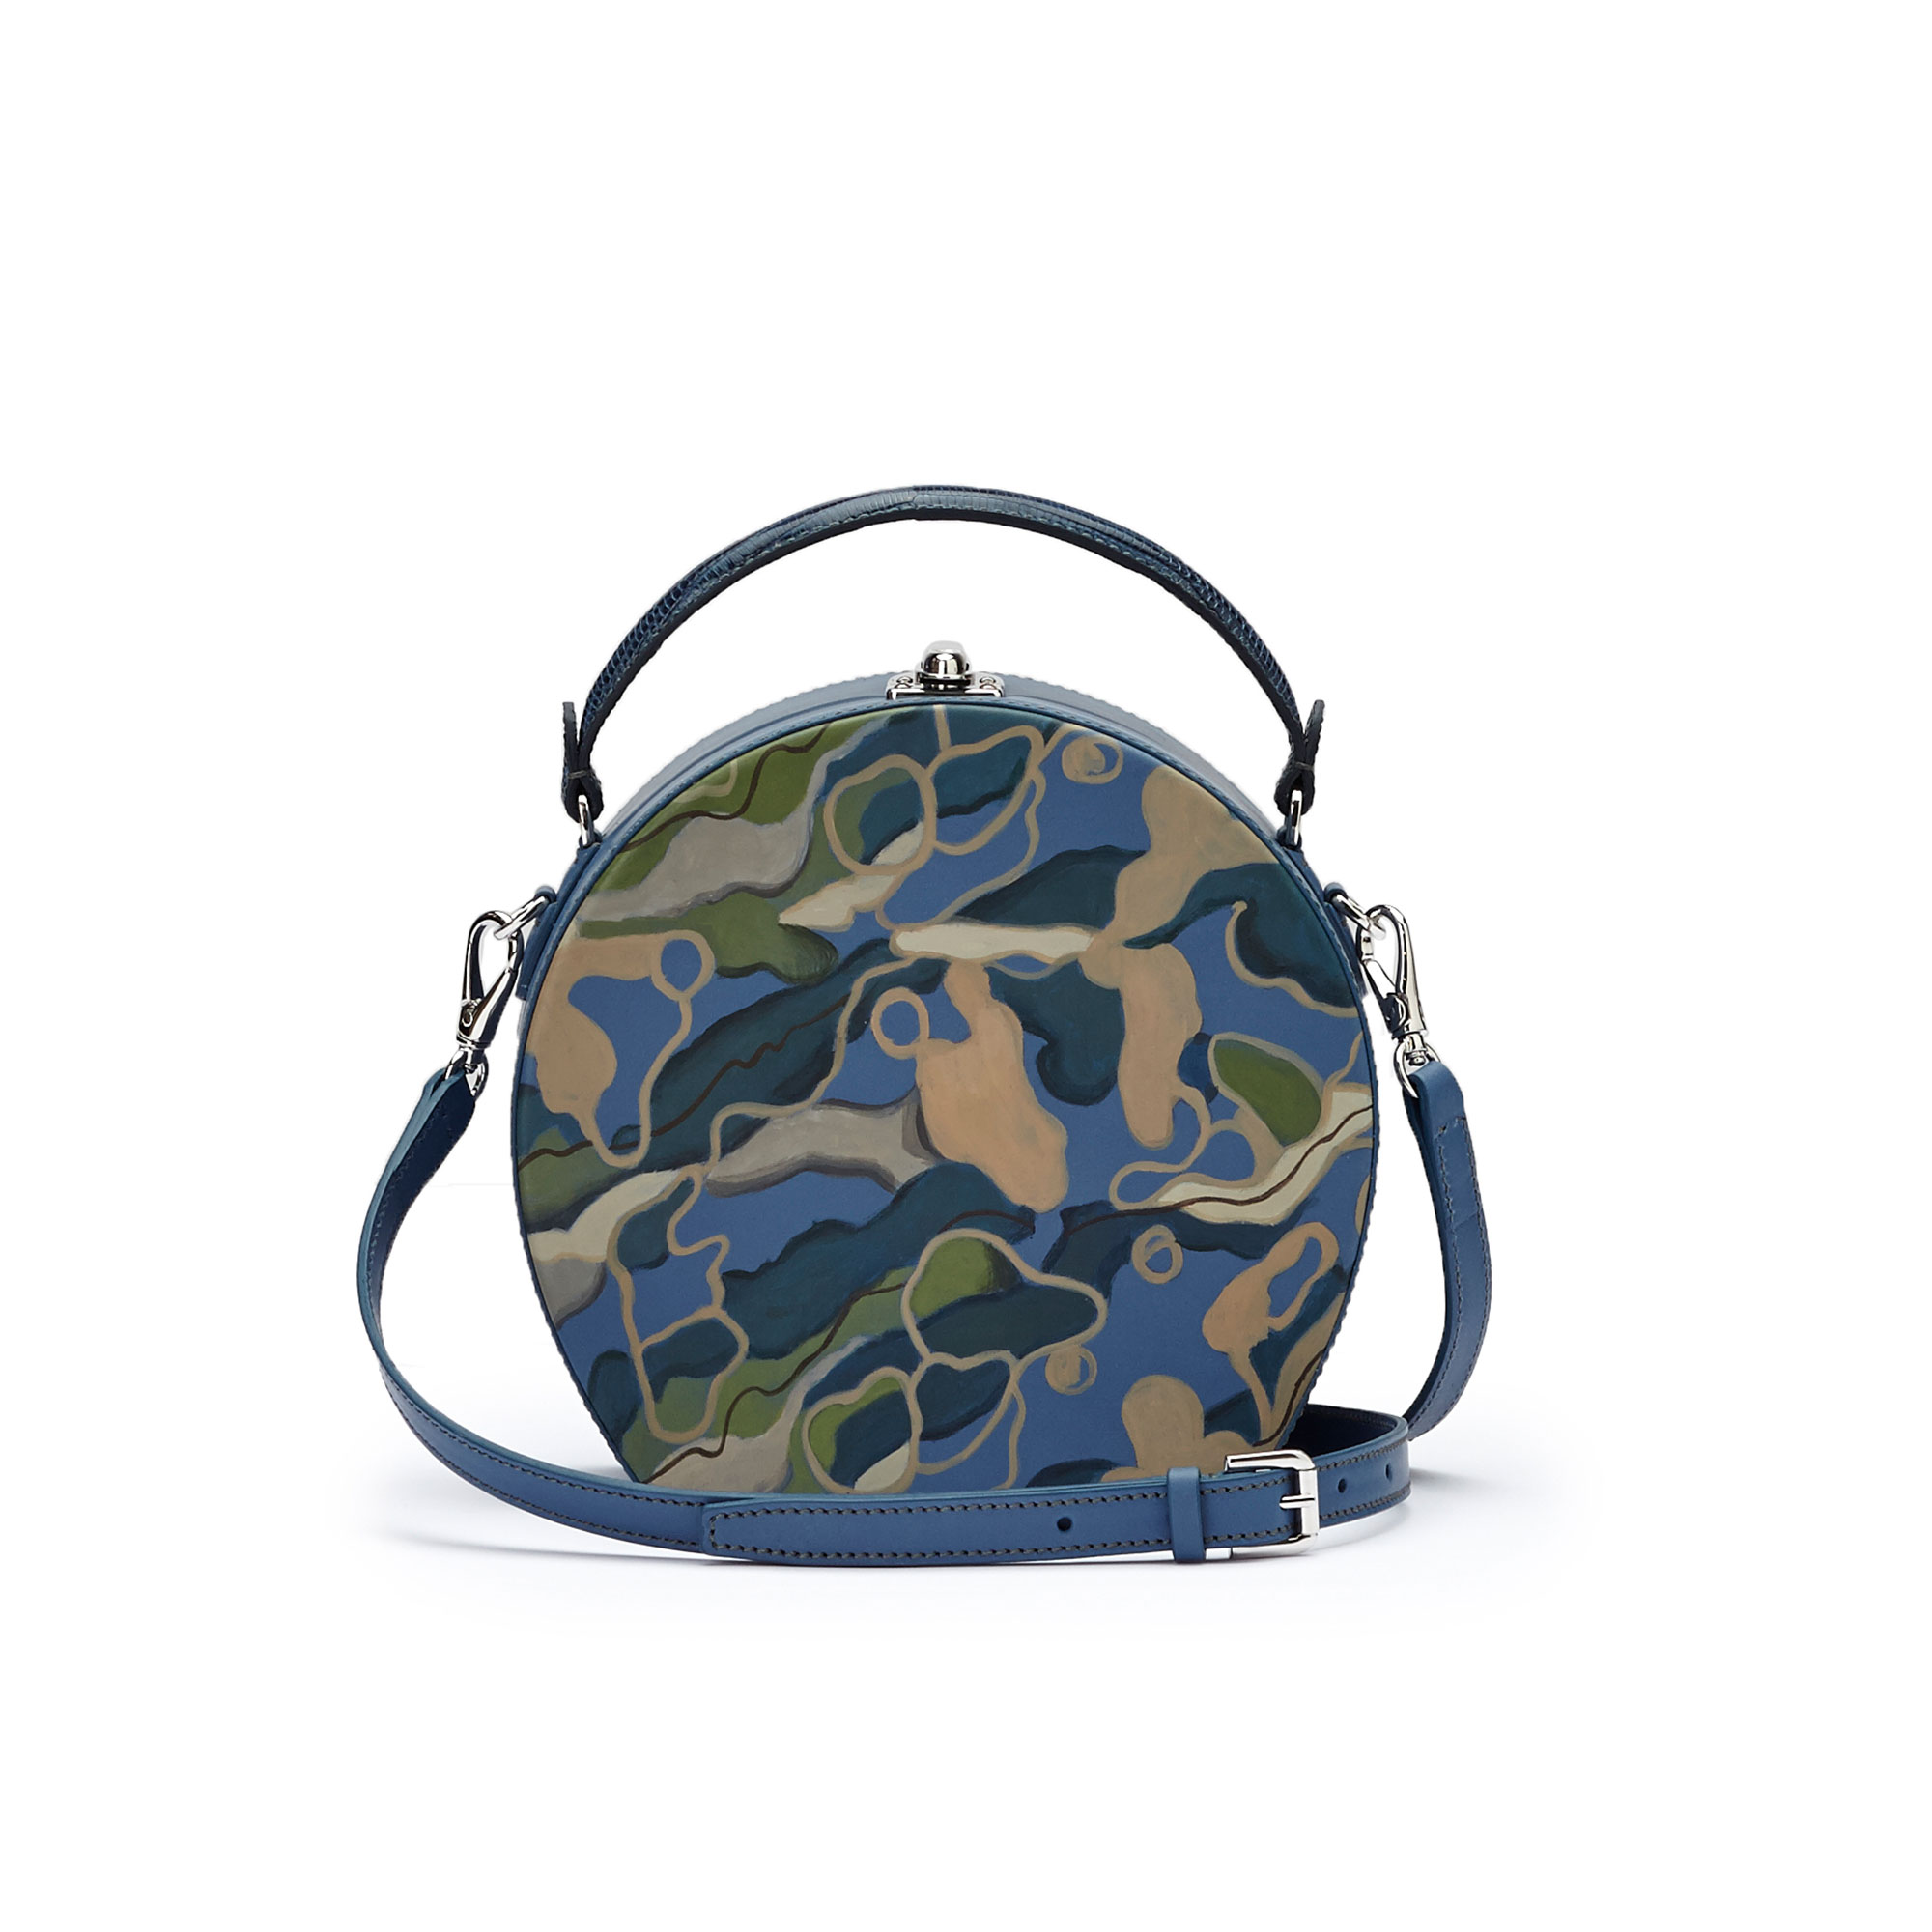 The hand-painted camouflage effect soft calf Regular Bertoncina bag by Bertoni 1949 02